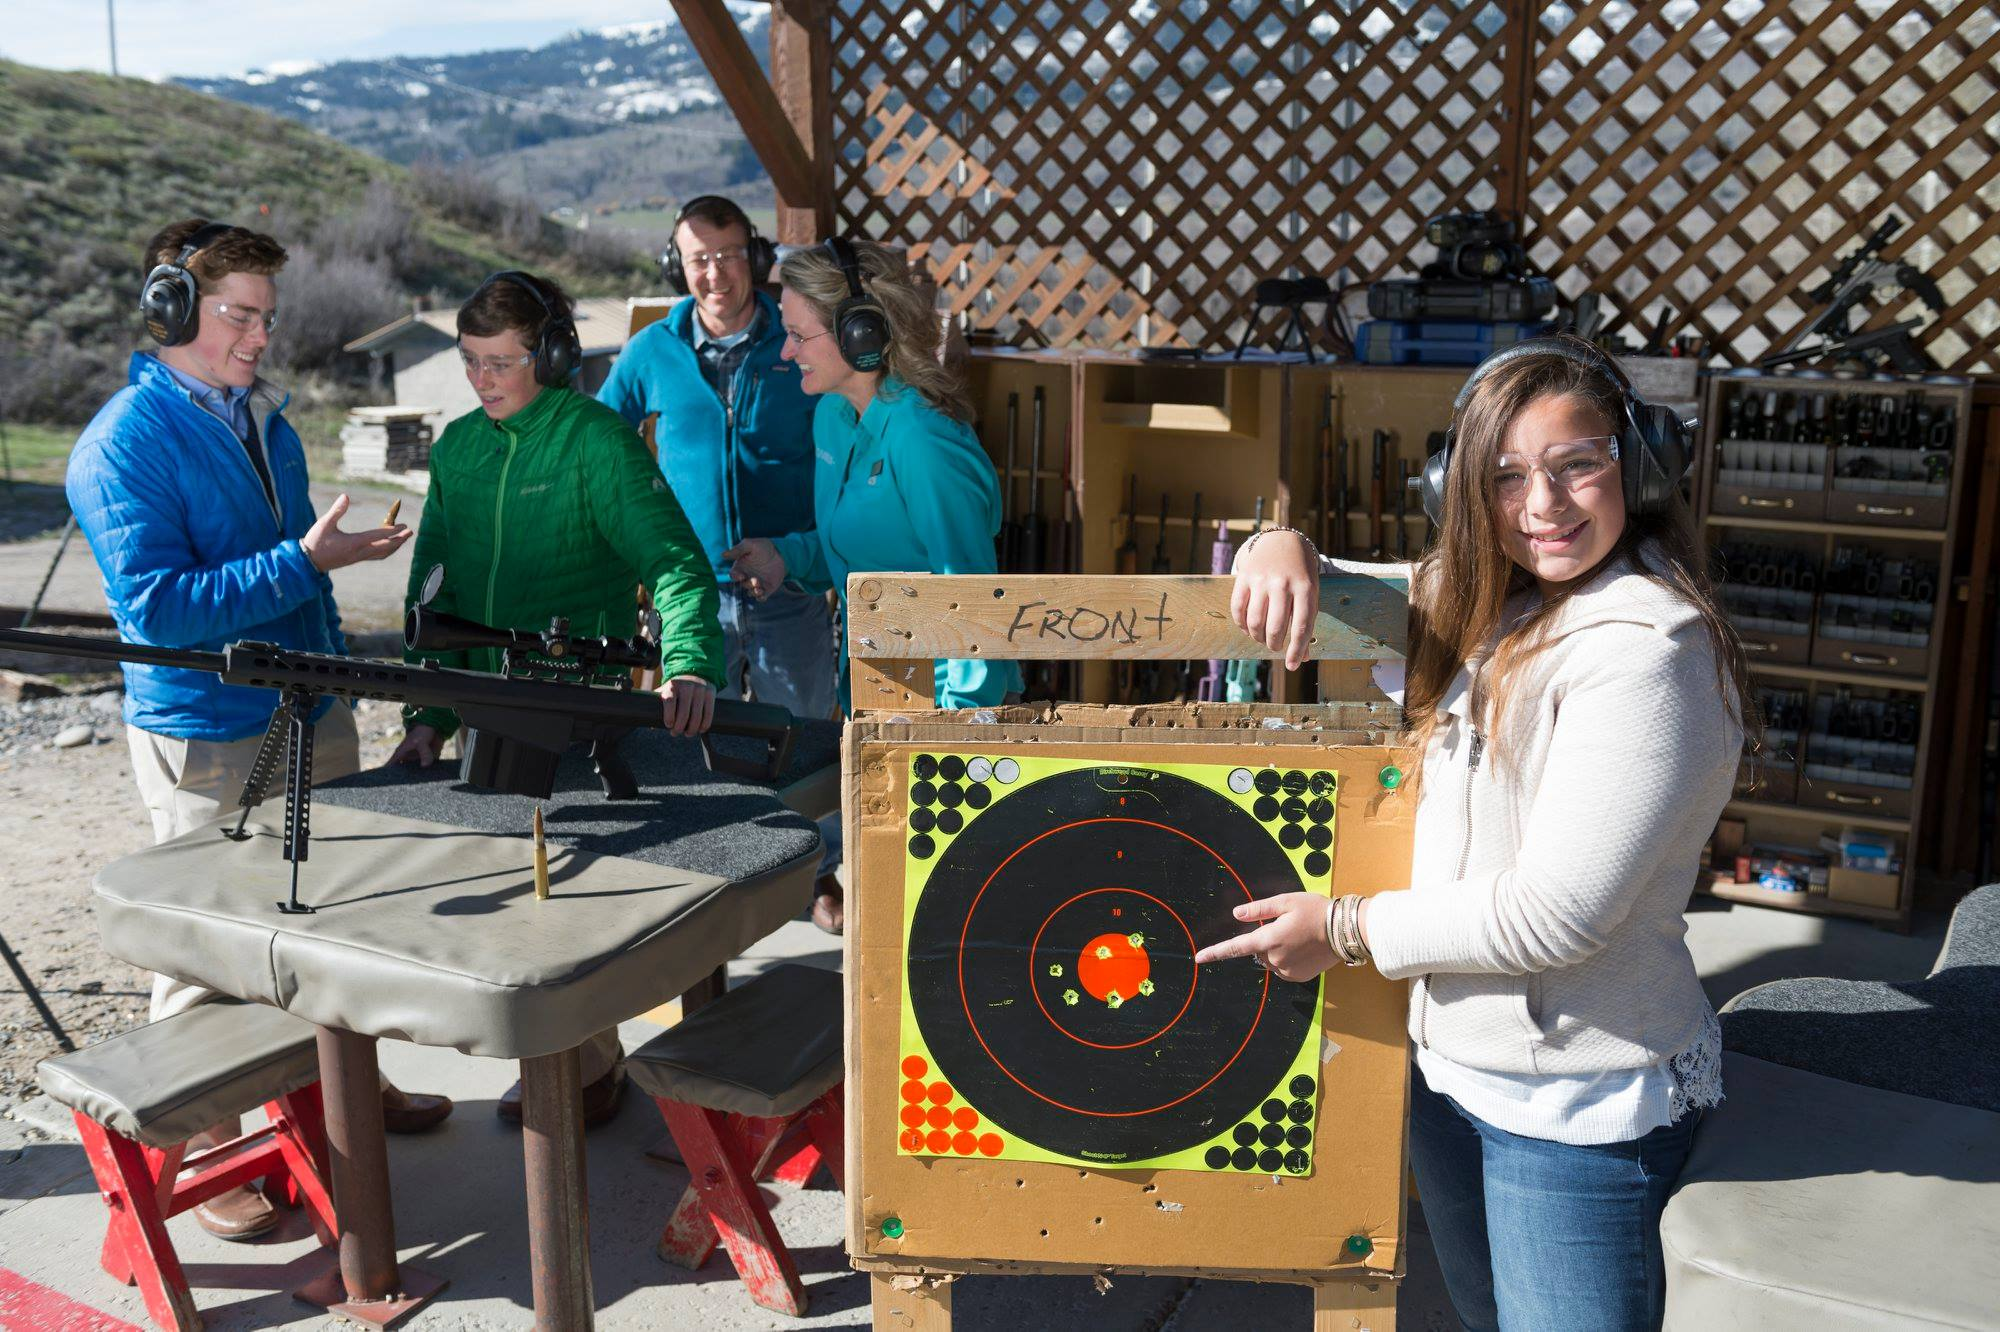 Jackson Hole Shooting Experience Jackson Hole Wyoming Guns Family Shotgun Pistol Rifle AK